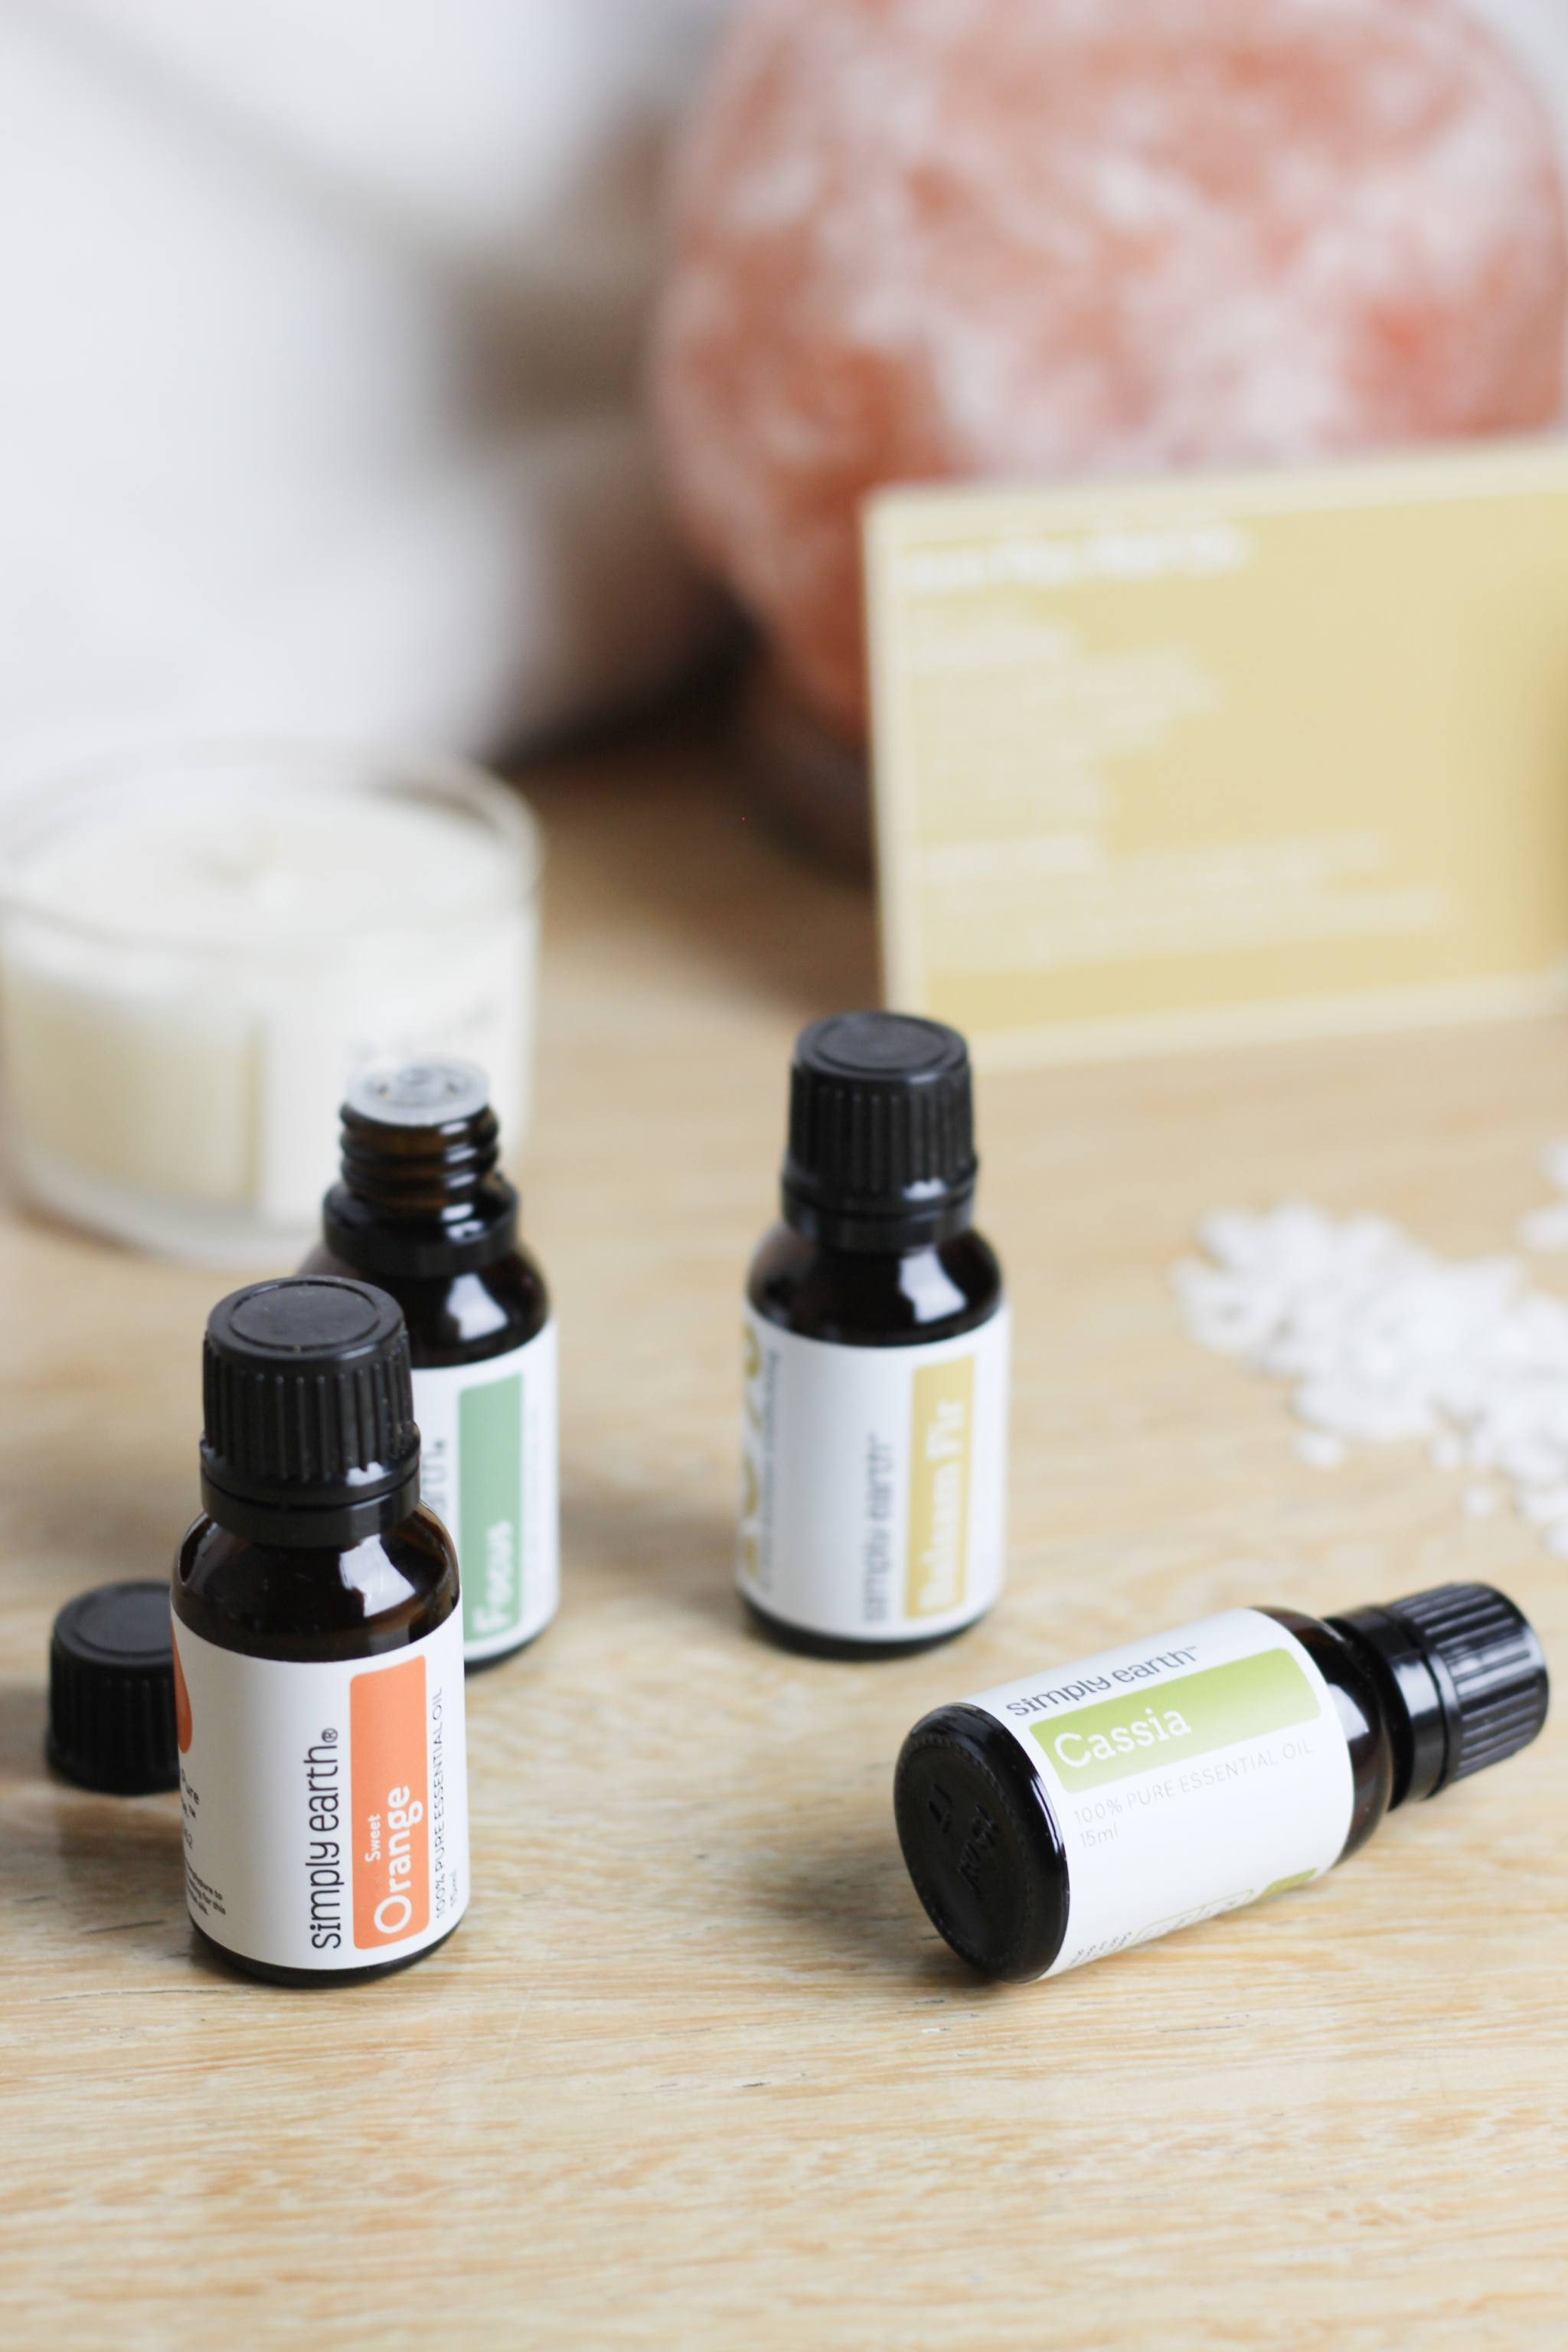 Simply Earth Bottles of Essential Oils in front of a Himalayan Salt Lamp